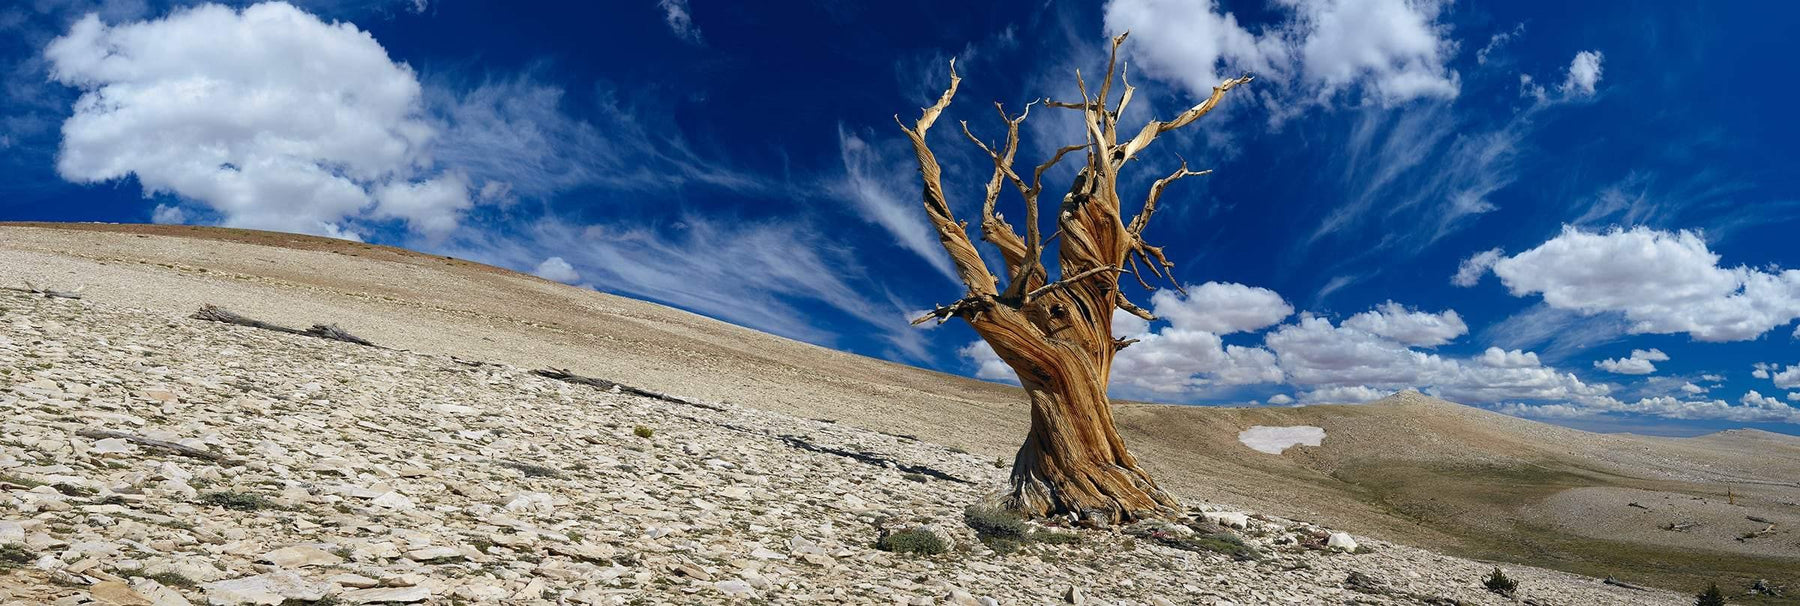 Old leafless bristlecone tree on a rocky hillside beneath blue cloudy skies in White Mountains California